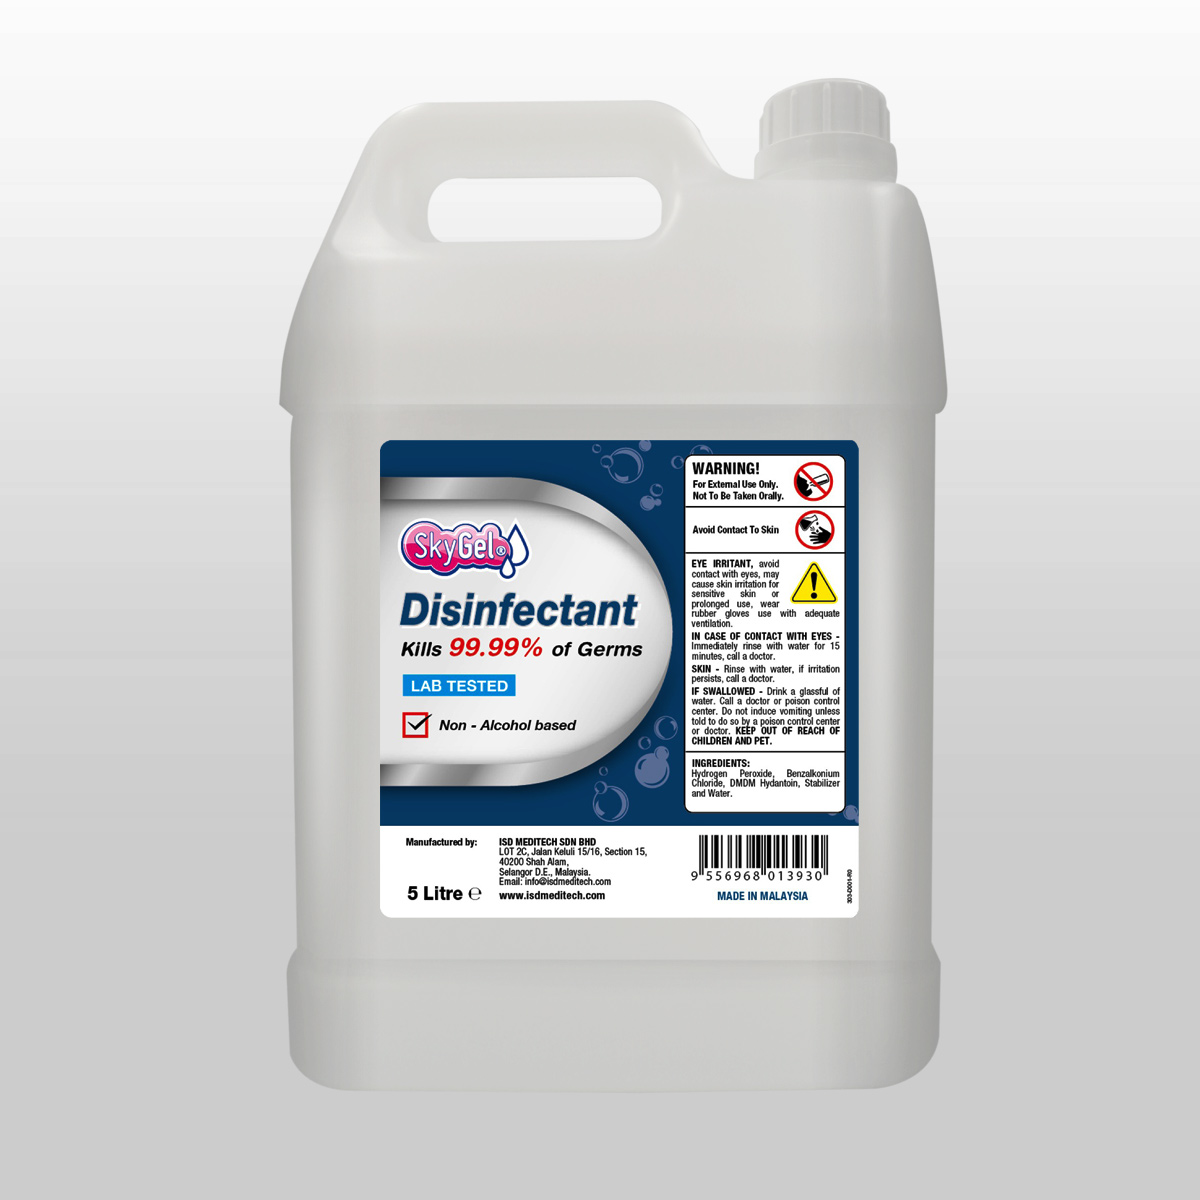 SKY GEL® Surface Disinfectant